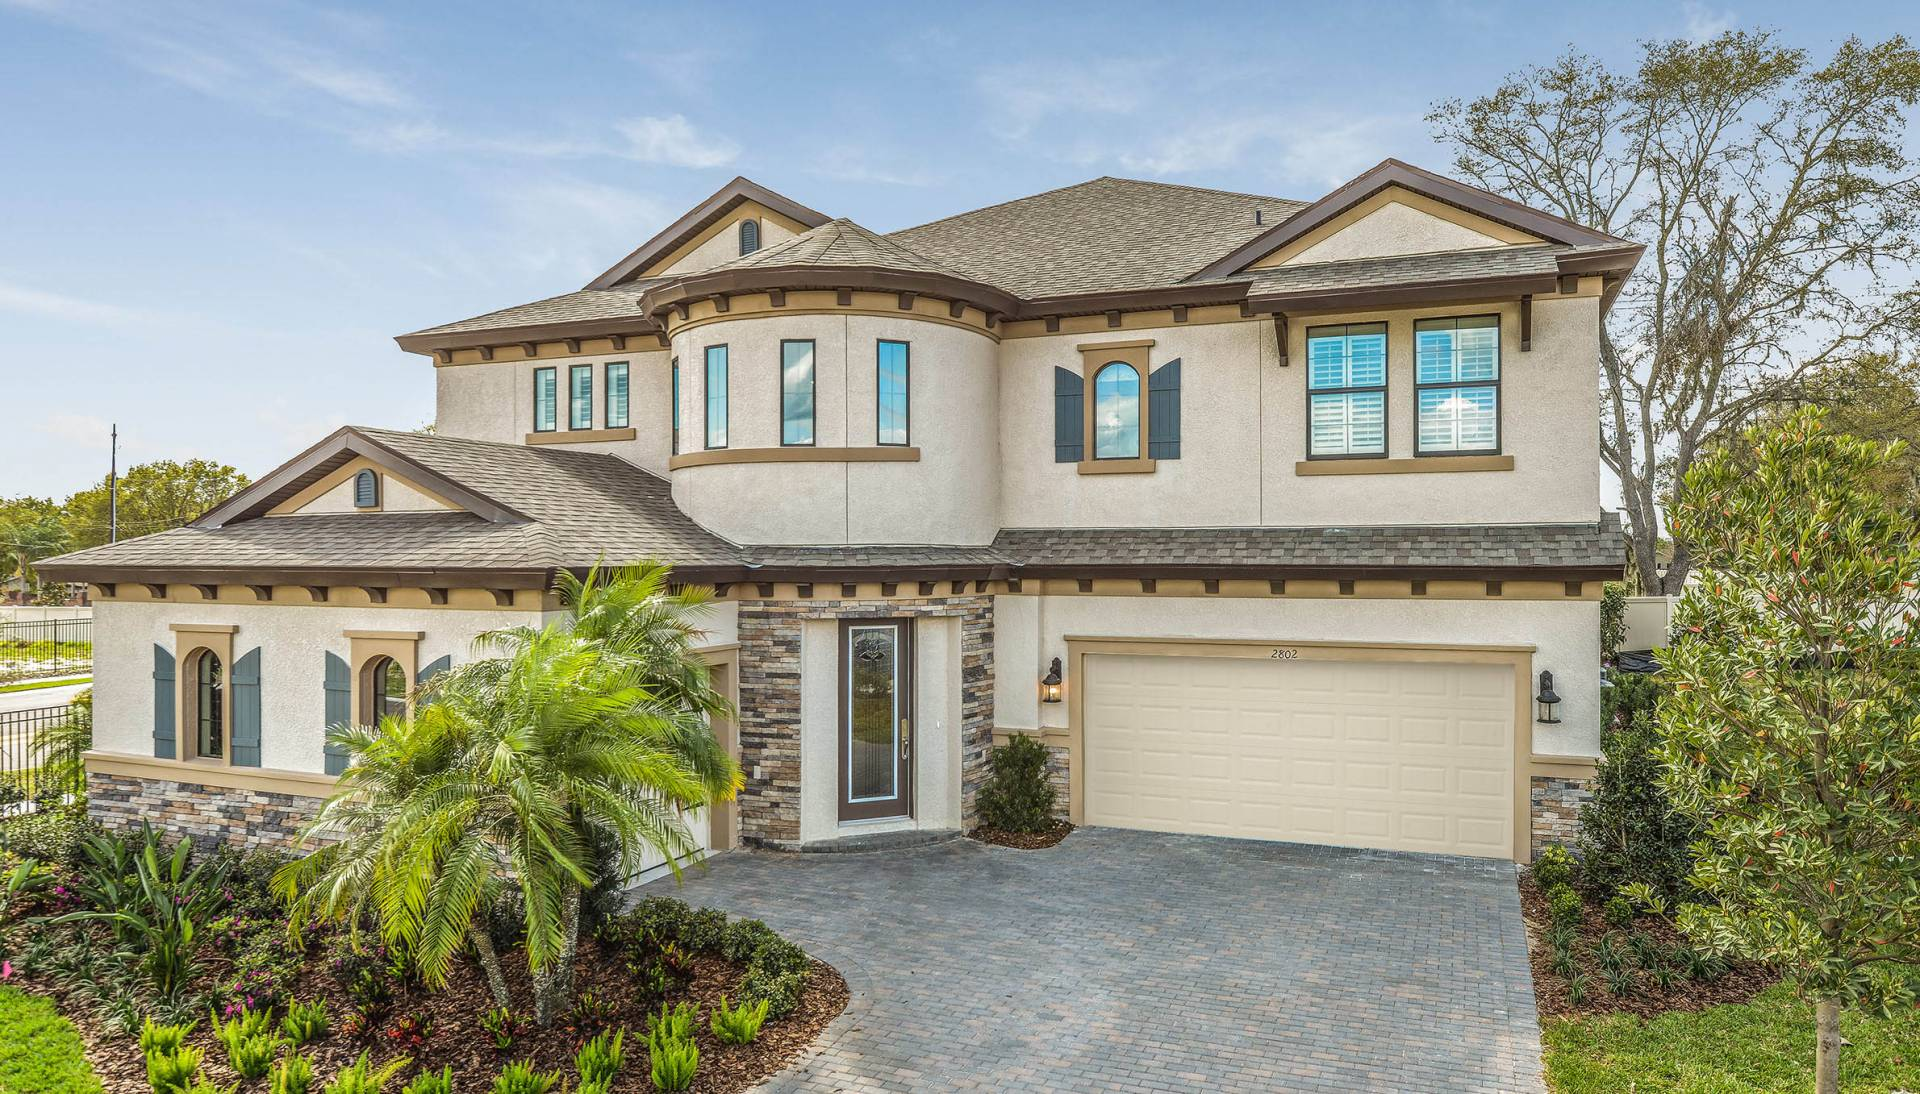 Free Service for Home Buyers | Legacy Ridge Valrico Florida Real Estate | Valrico Realtor | New Homes for Sale | Valrico Florida